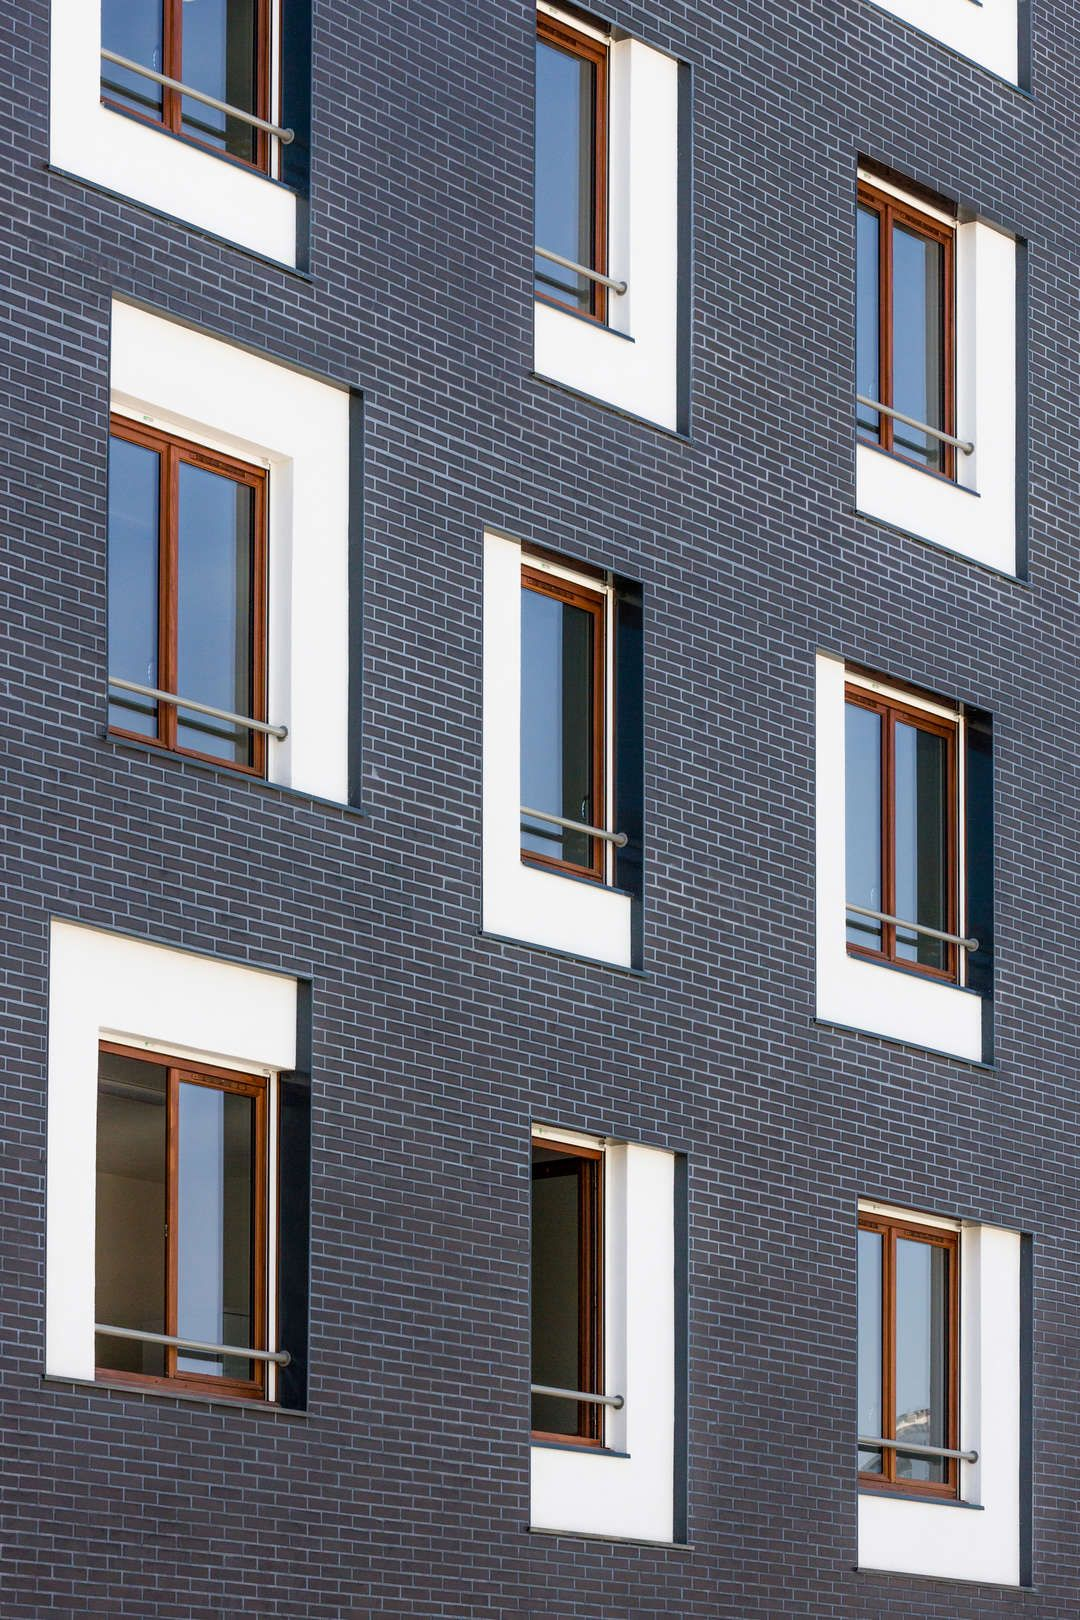 Exterior window wall design aubervilliers on architizer  salón de fiestas  pinterest  facades